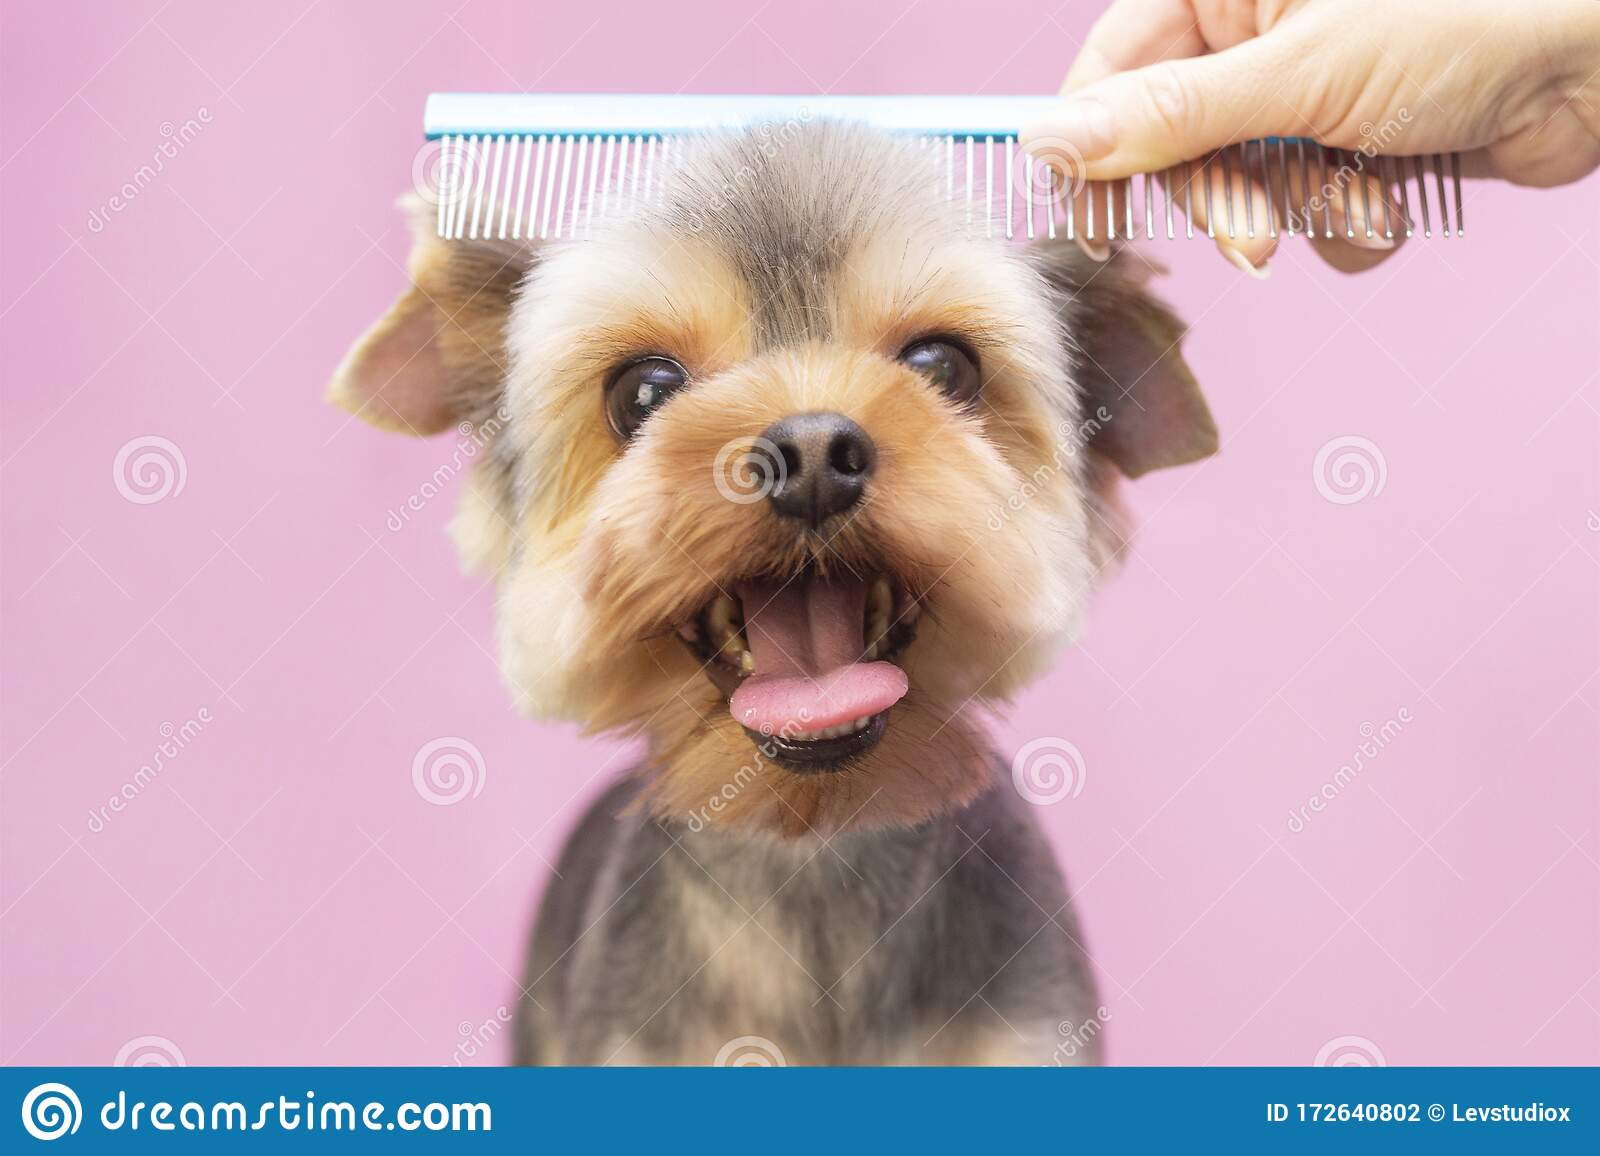 Dog Gets Hair Cut At Pet Spa Grooming Salon Closeup Of Dog The Dog Has A Haircut Comb The Hair Pink Background Stock Photo Image Of Groom Hairdresser 172640802